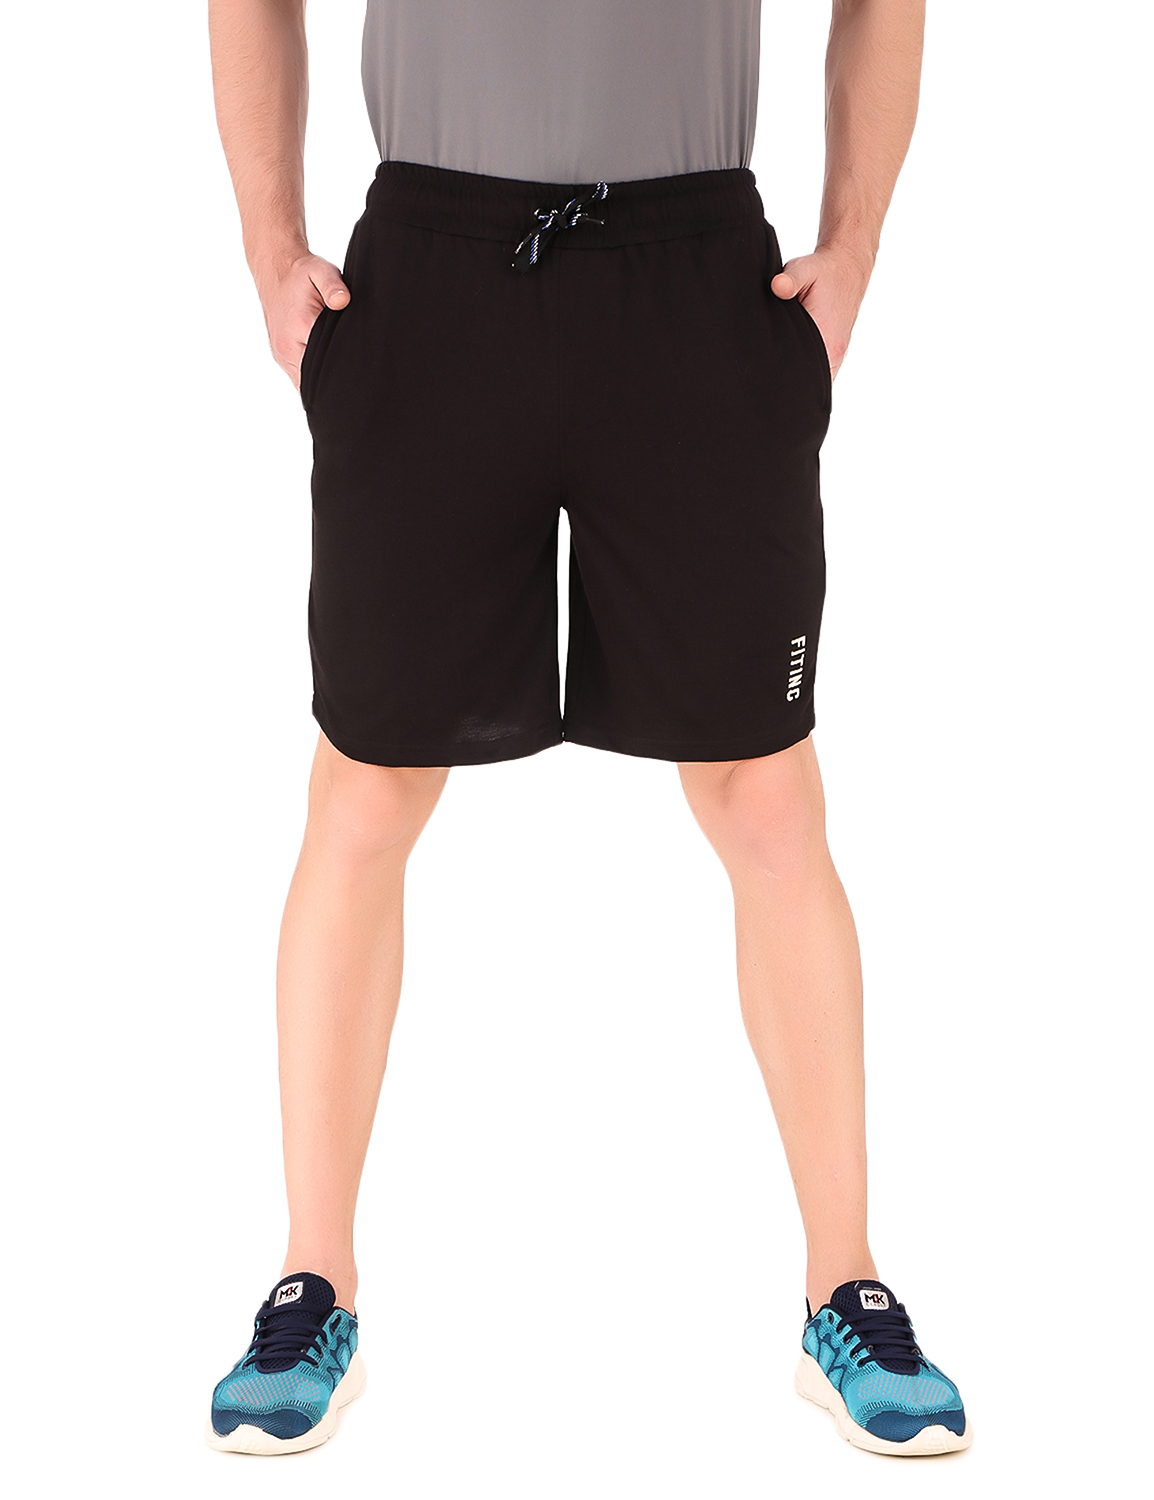 Fitinc | Fitinc Cotton Black Shorts for Men with Embroidery Logo